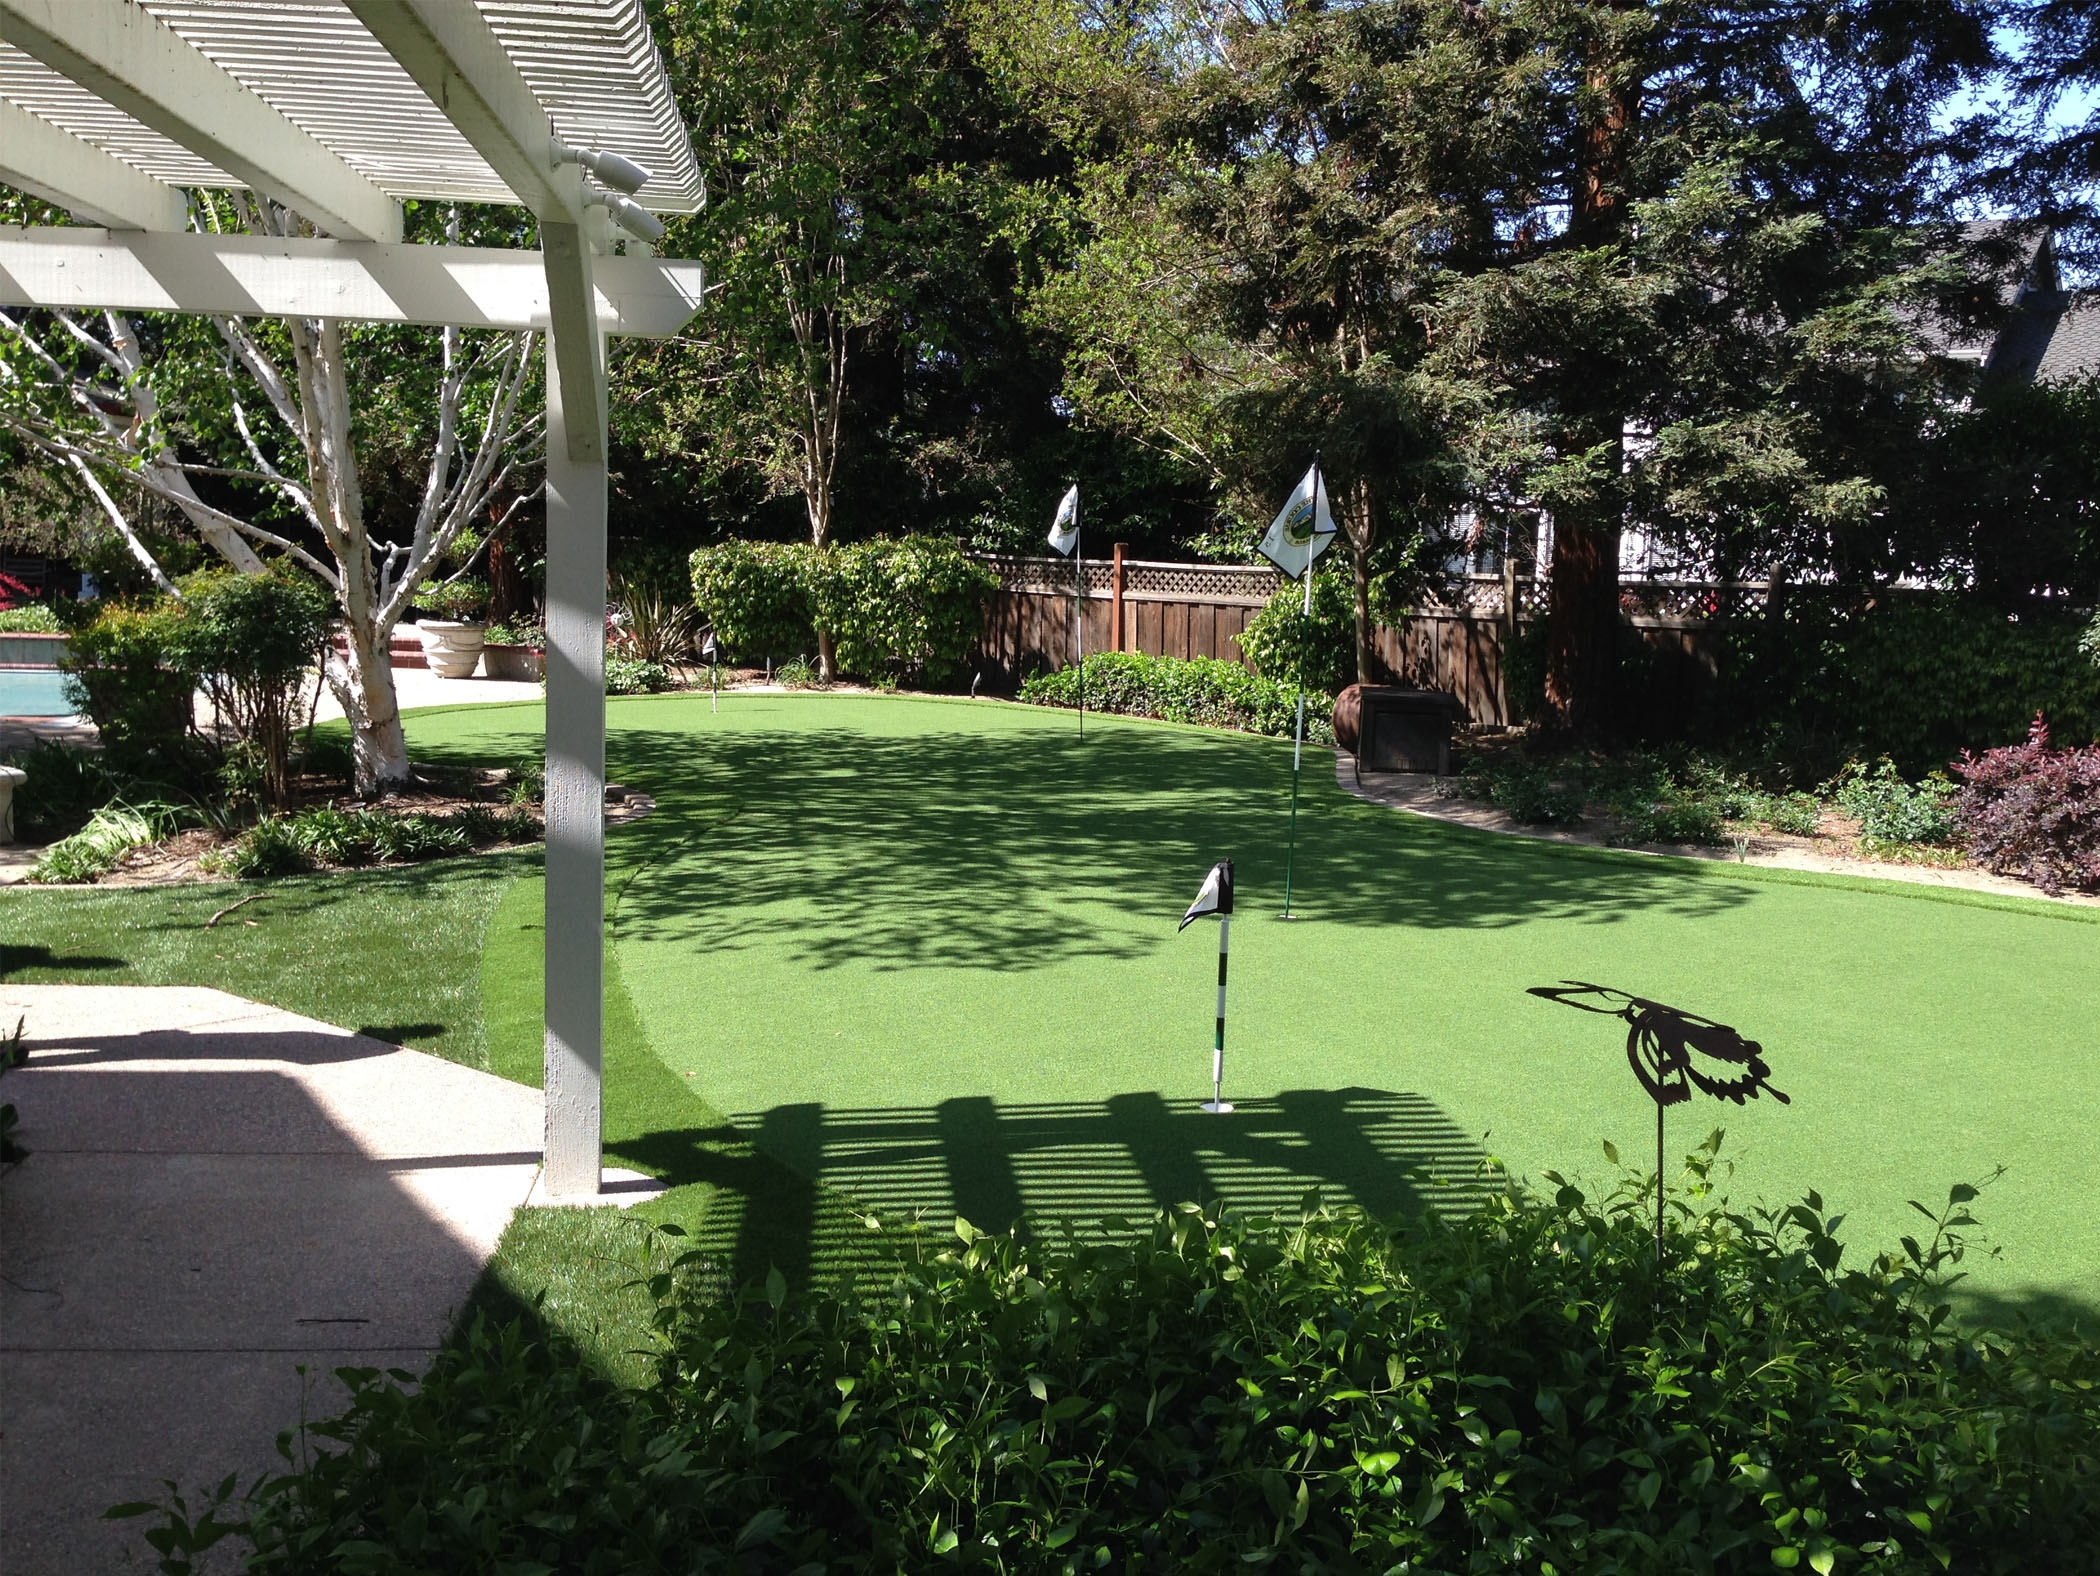 Responses To Synthetic Grass, Artificial Grass North Hollywood